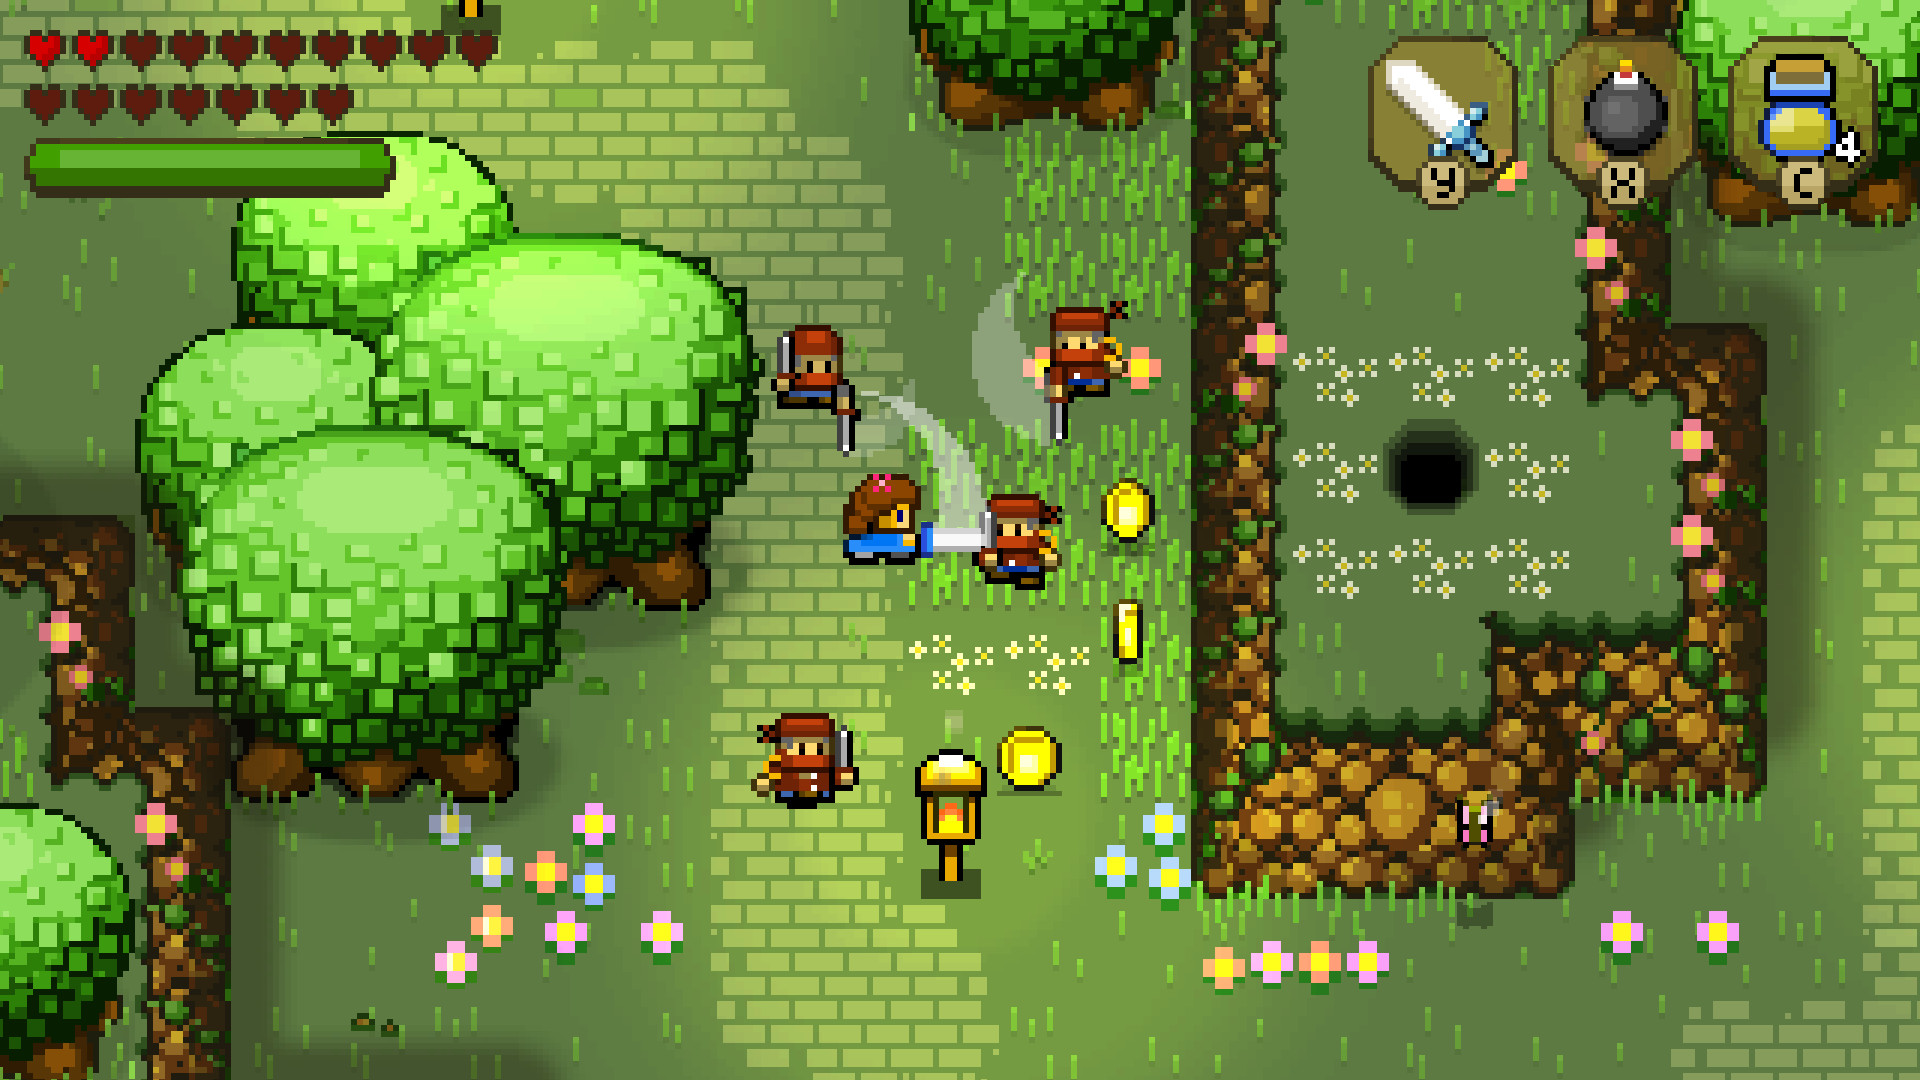 Blossom Tales: The Sleeping King, Castle Pixel, LLC.